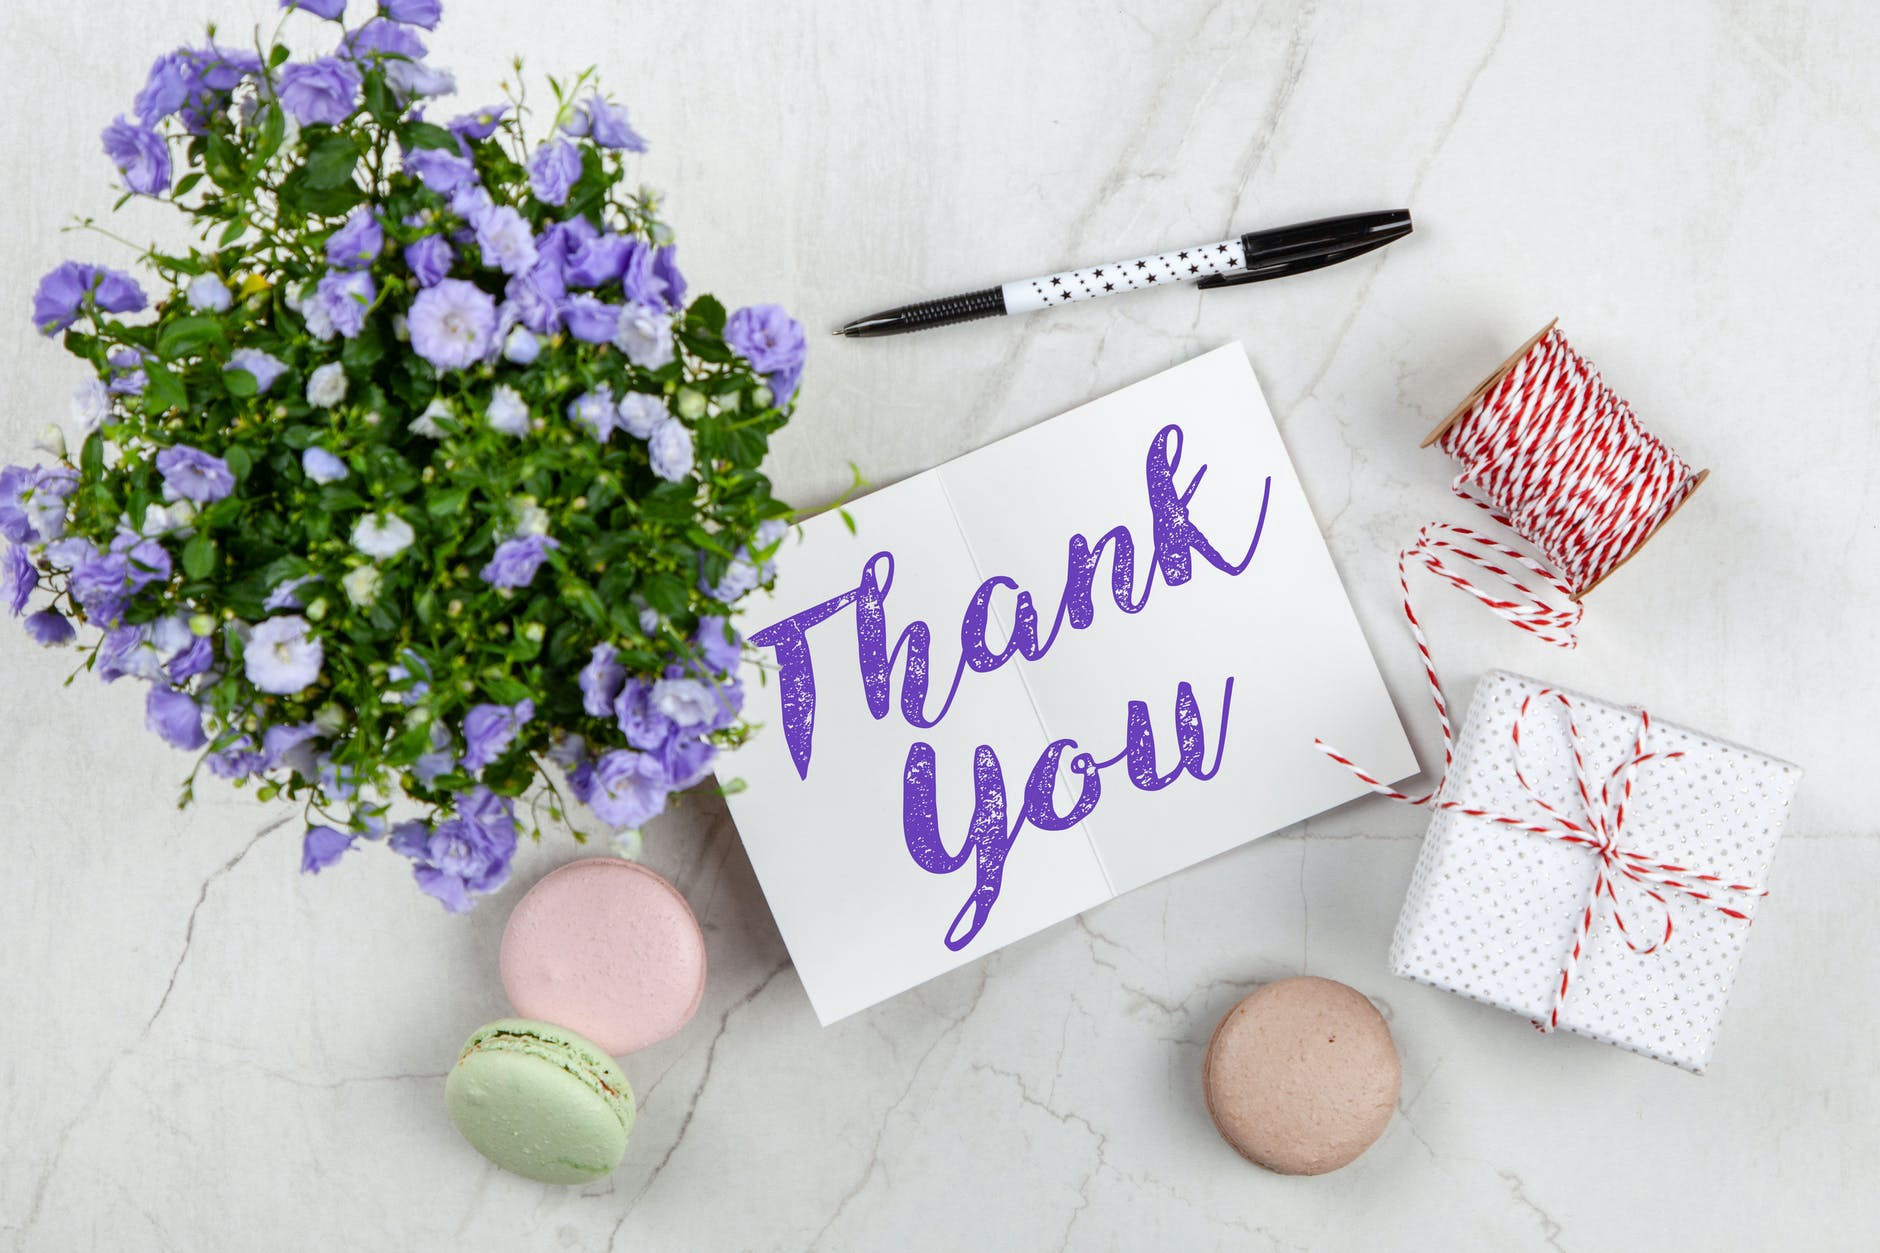 A purple-petaled flower and a beautiful thank you card